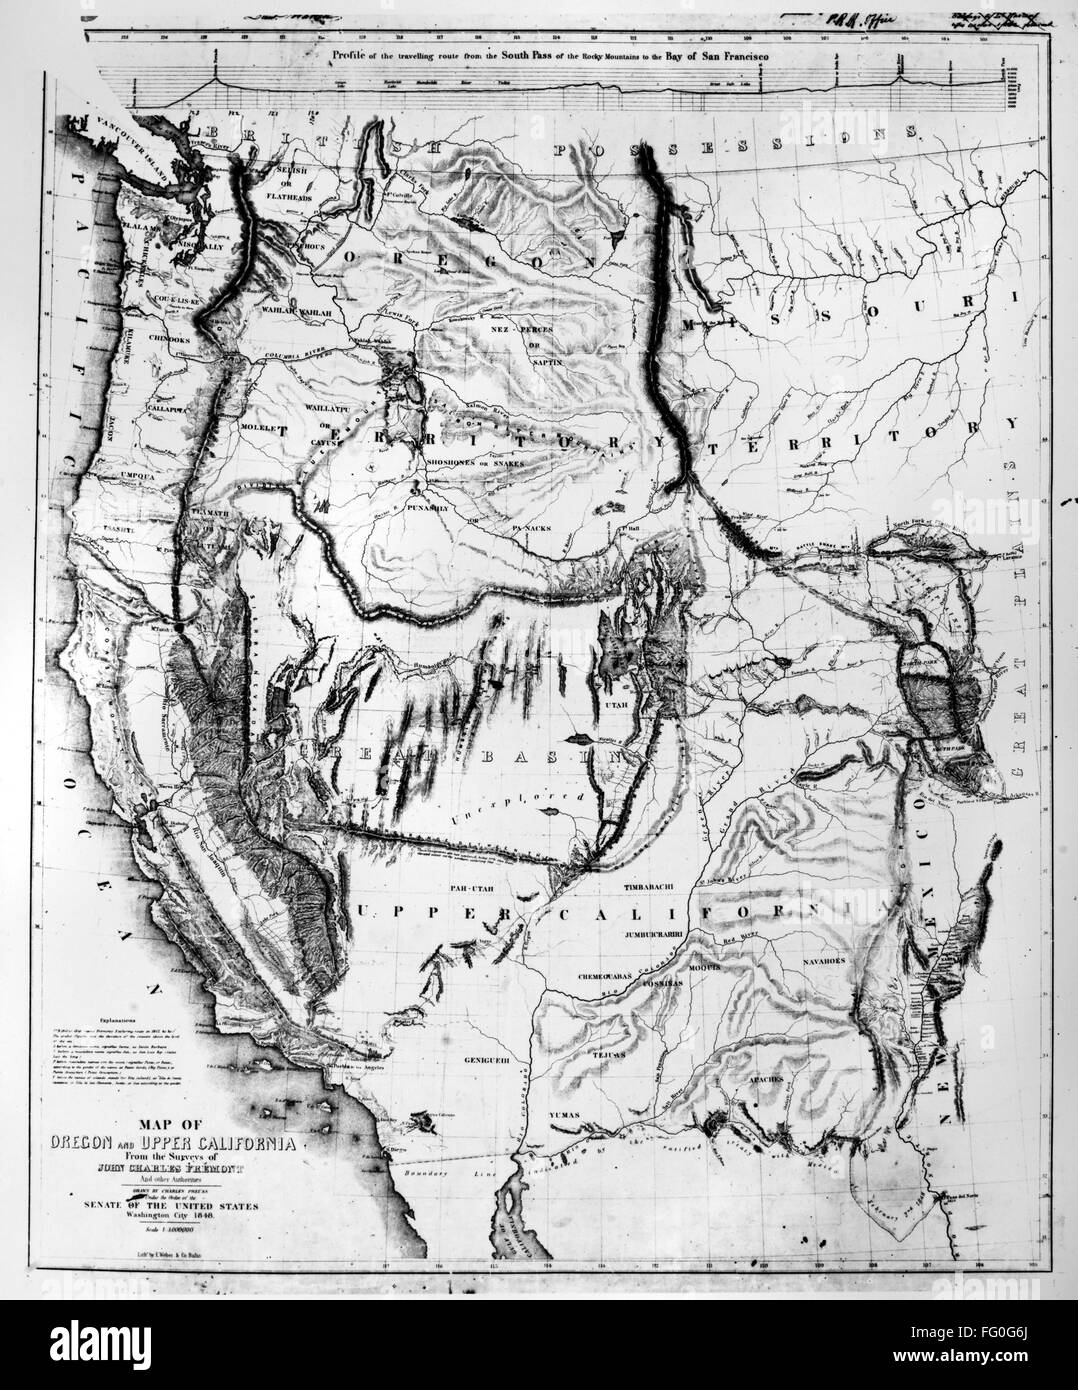 Map Western U S 1848 Nmap Of The Western United States 1848 By Charles Preuss Surveyor On John C Fremont S Expeditions To The Rocky Mountains And